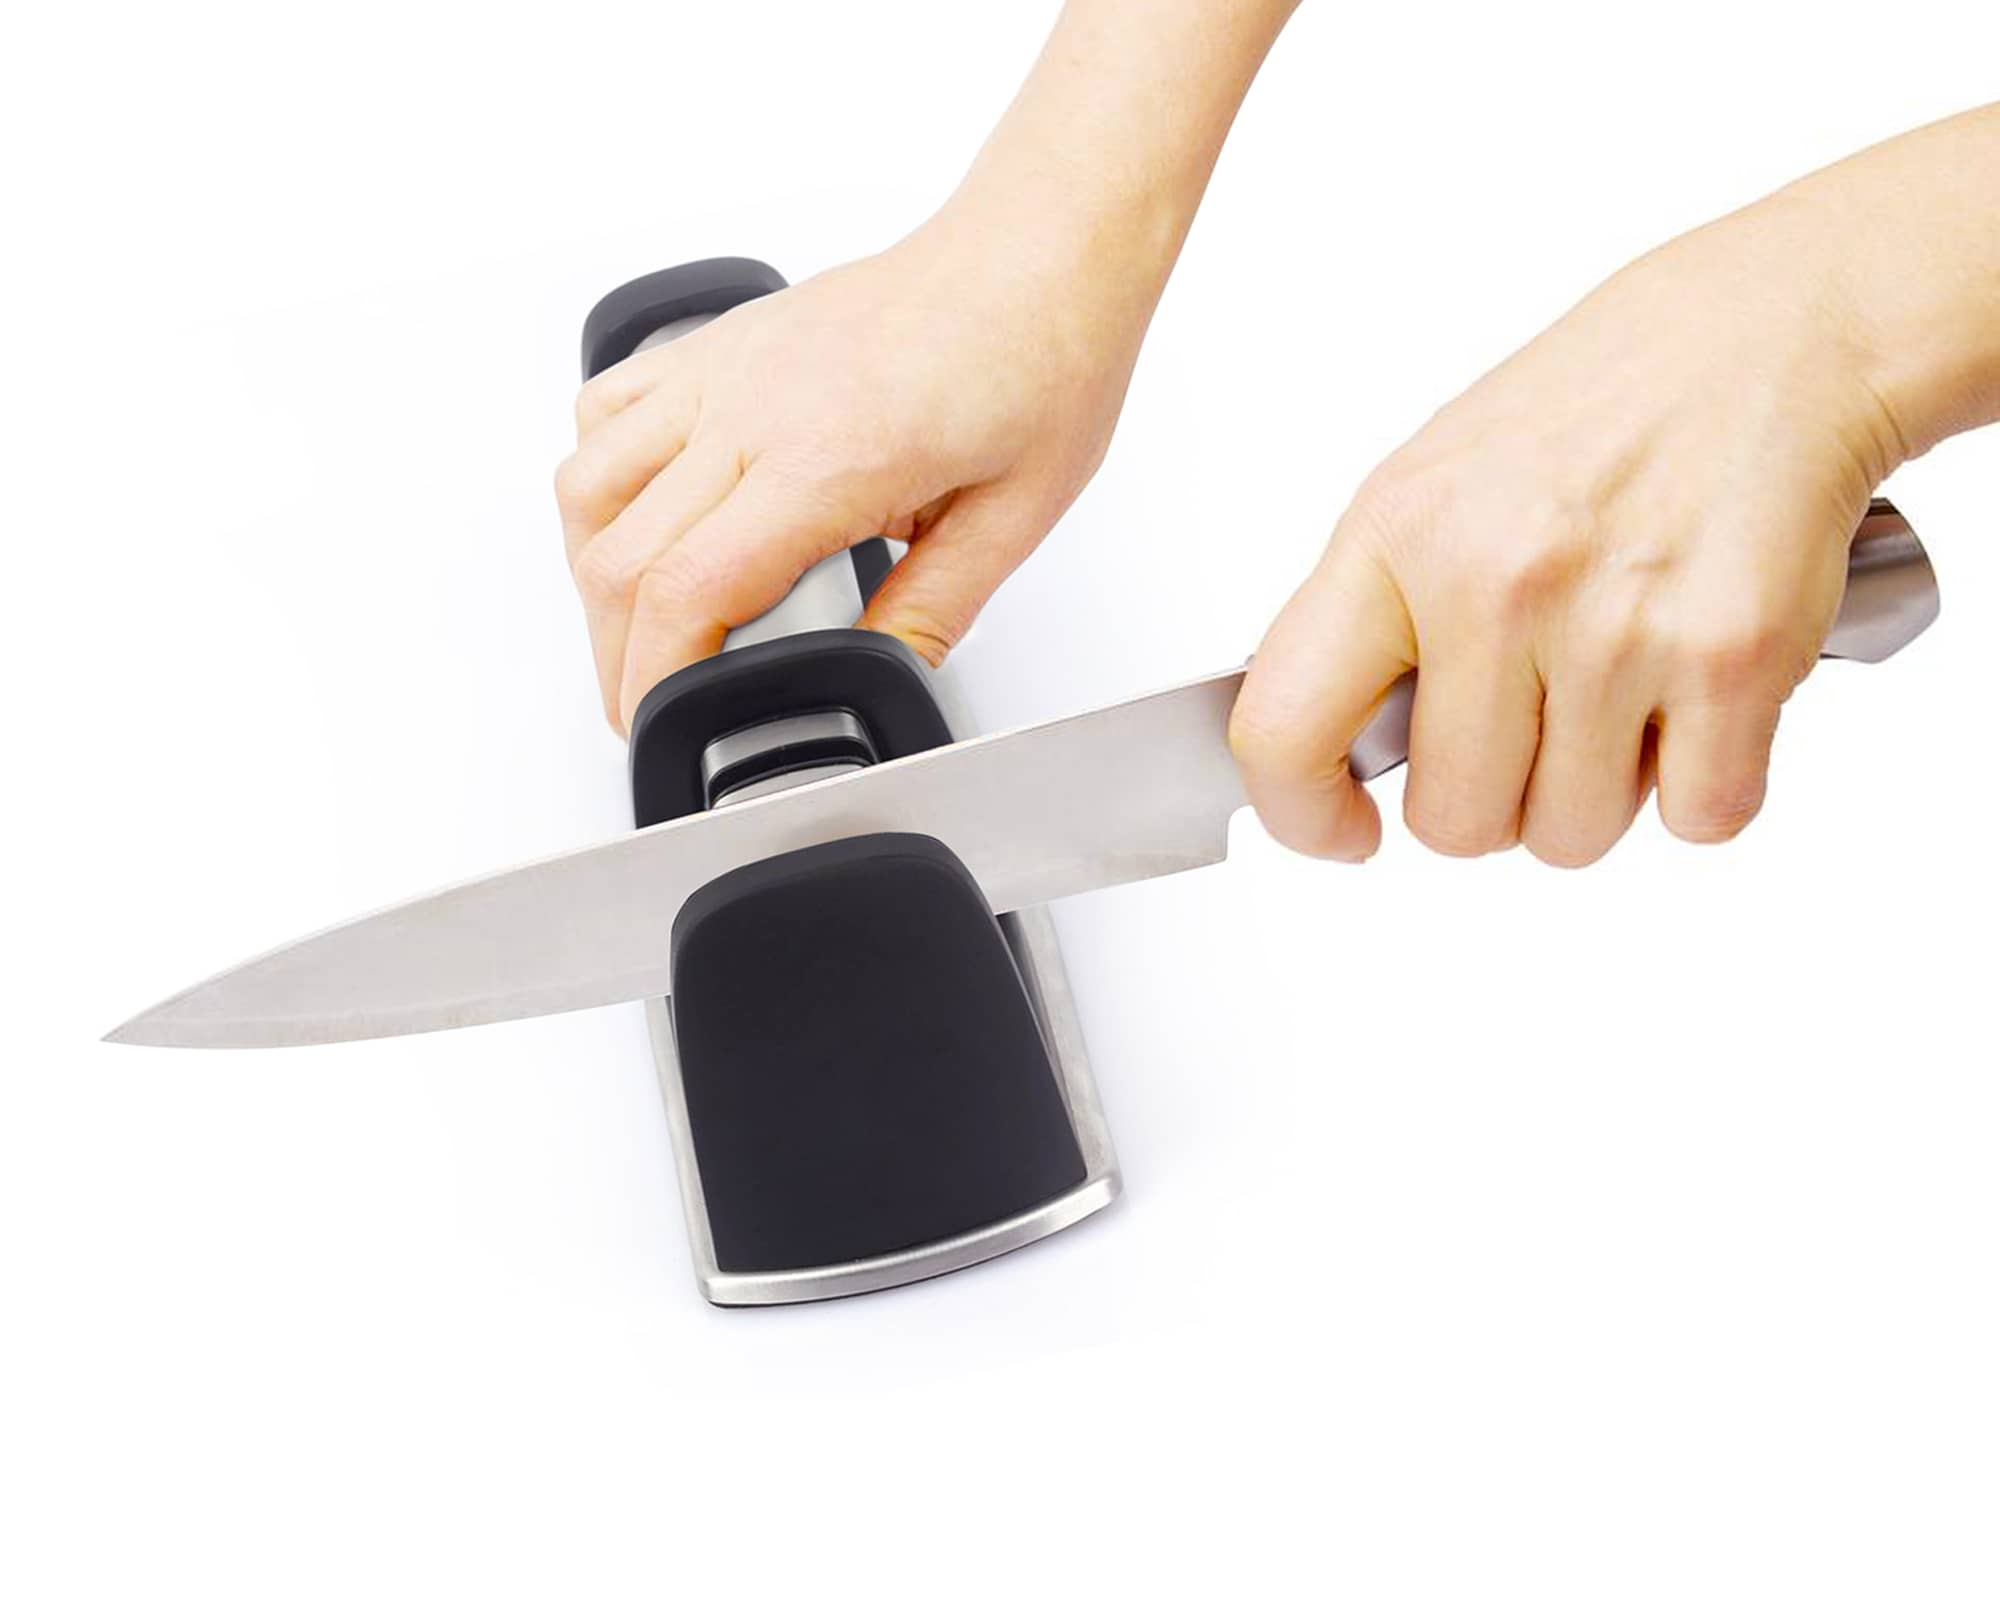 A Woman sharp the knife with Benchusch Two-Stage Knife Sharpener